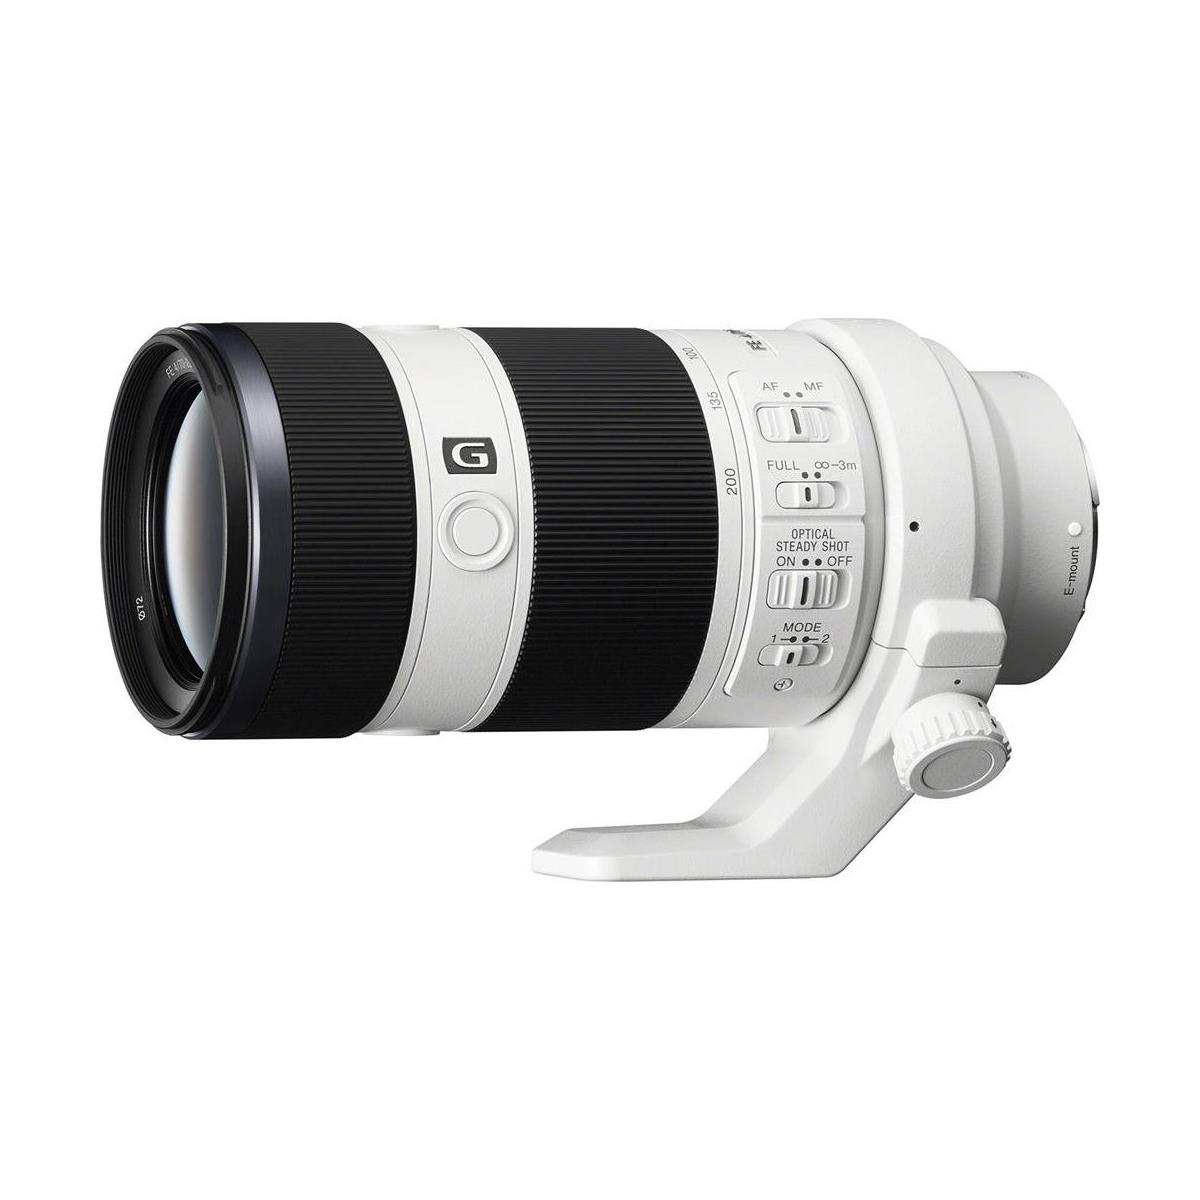 Sony 70-200 f/4 telephoto lens (FE) - this is a great option for wedding and sports photographers that offers excellent auto focus and sharp results. While not as sharp or fast as it's G master counterpart, it is $1,000 less and delivers a lot of value for the price.